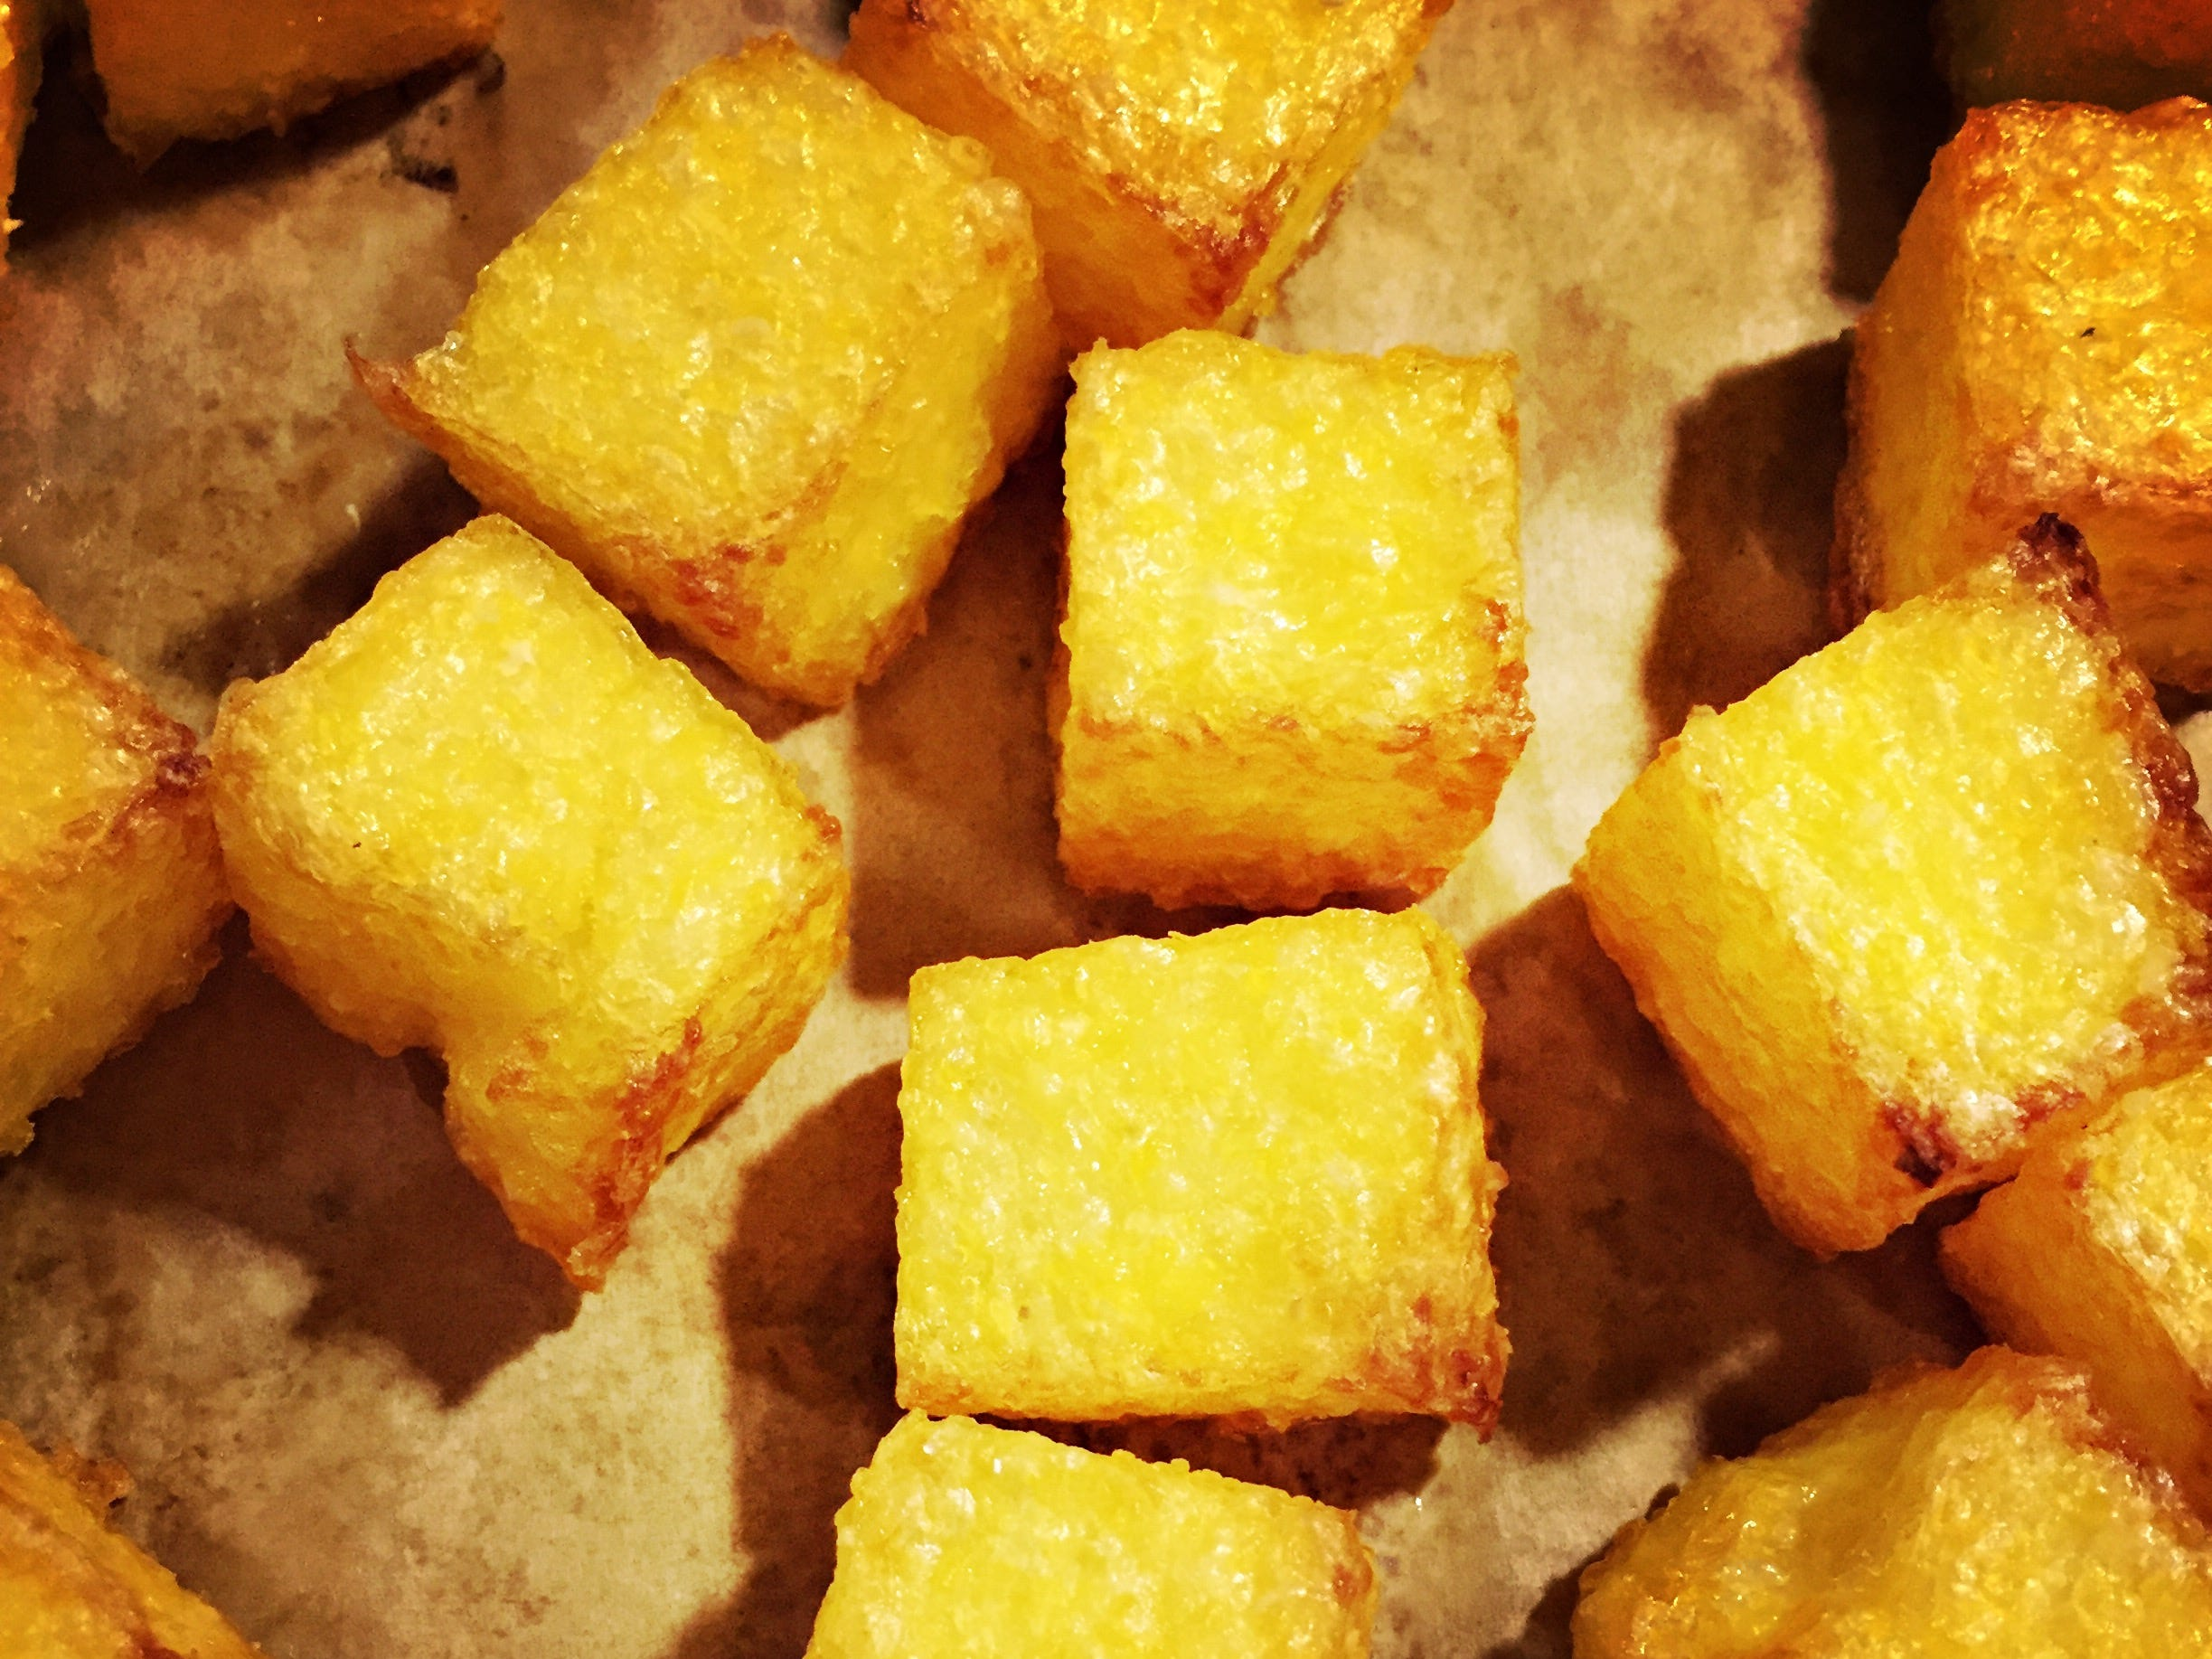 Golden brown polenta is ready to eat.